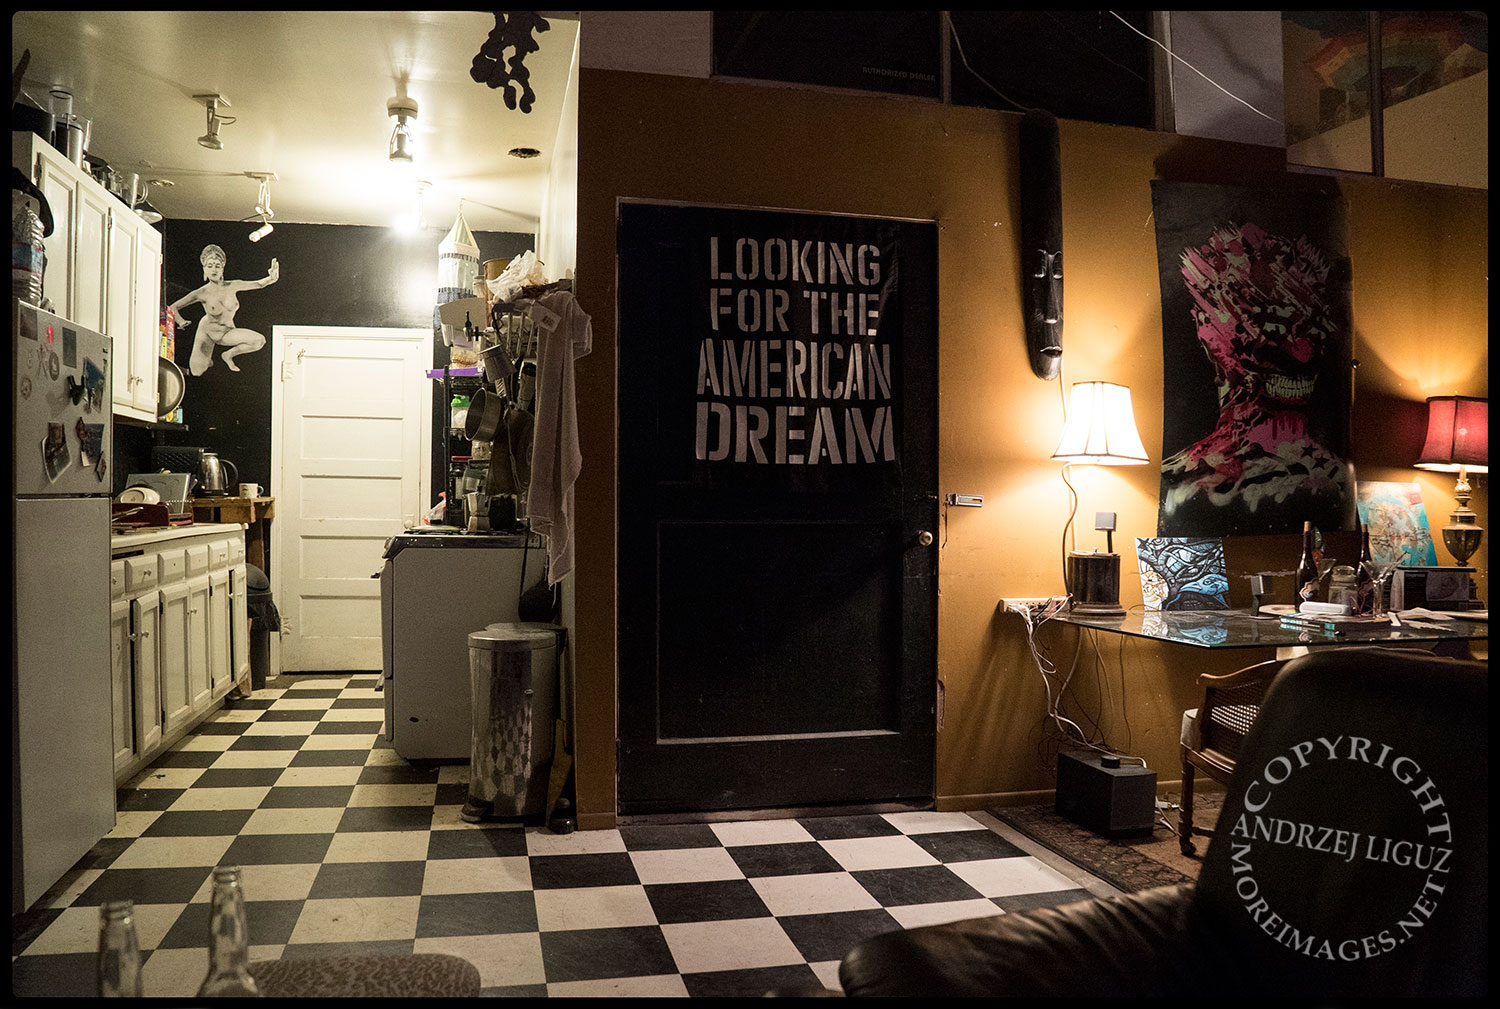 The Banner outside my room, Scotty's warehouse, Petaluma, CA 2015-03-05